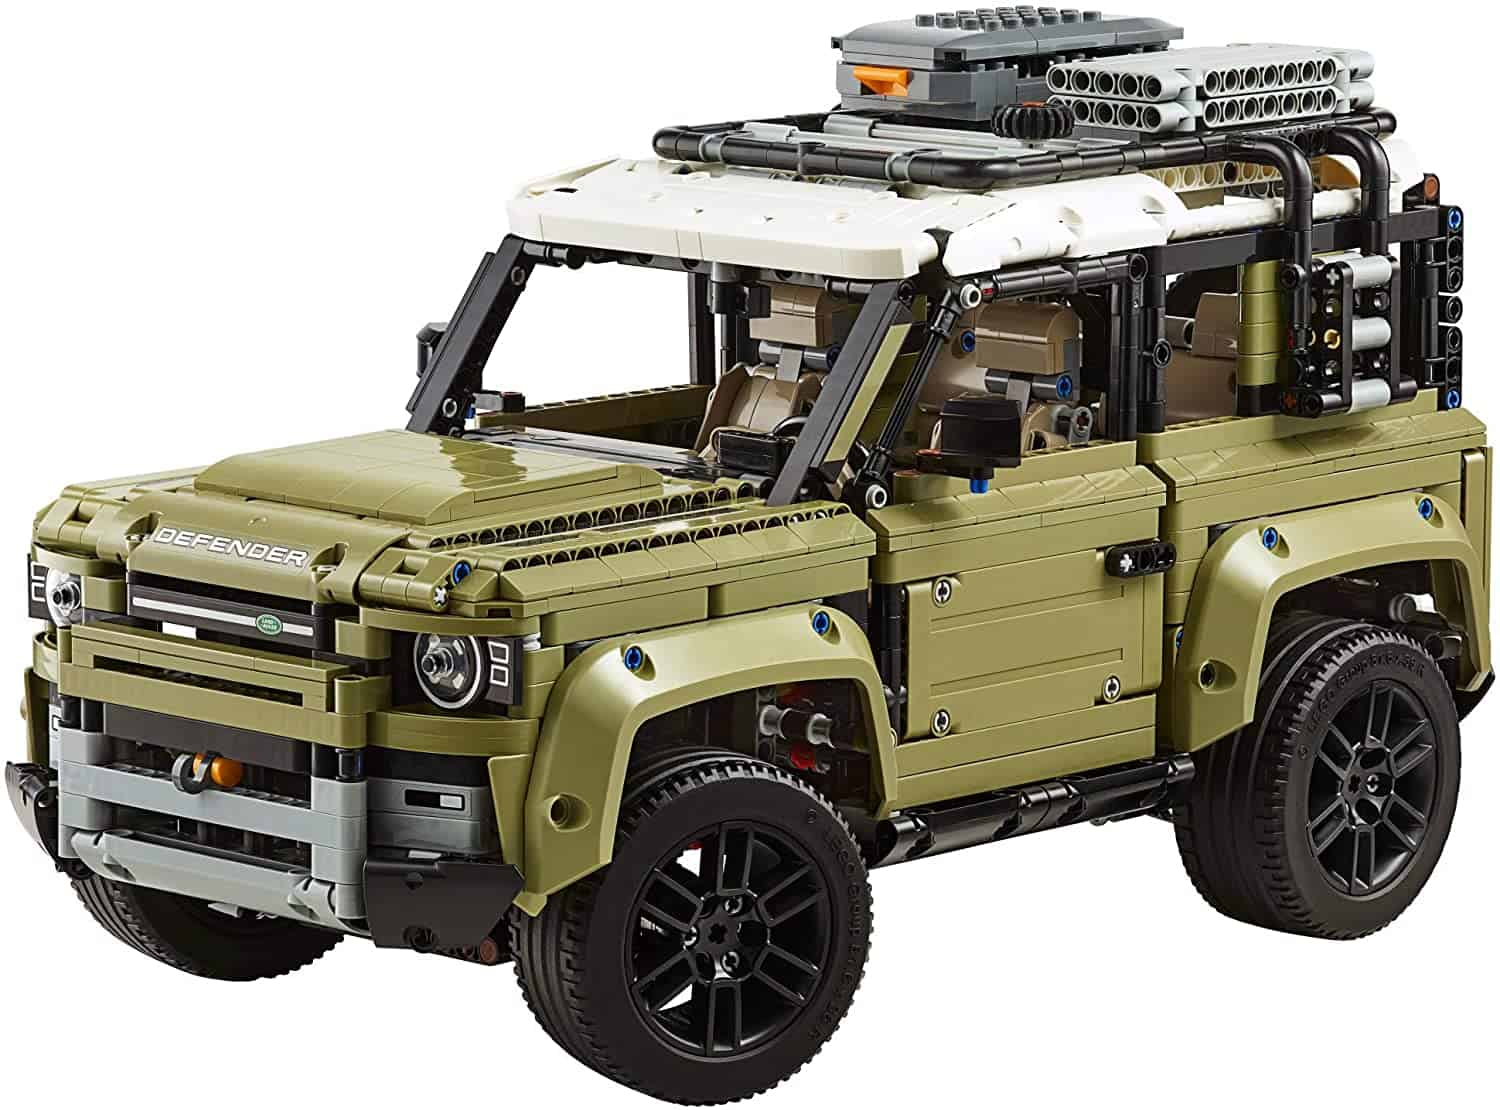 LEGO Technic Land Rover Defender kit